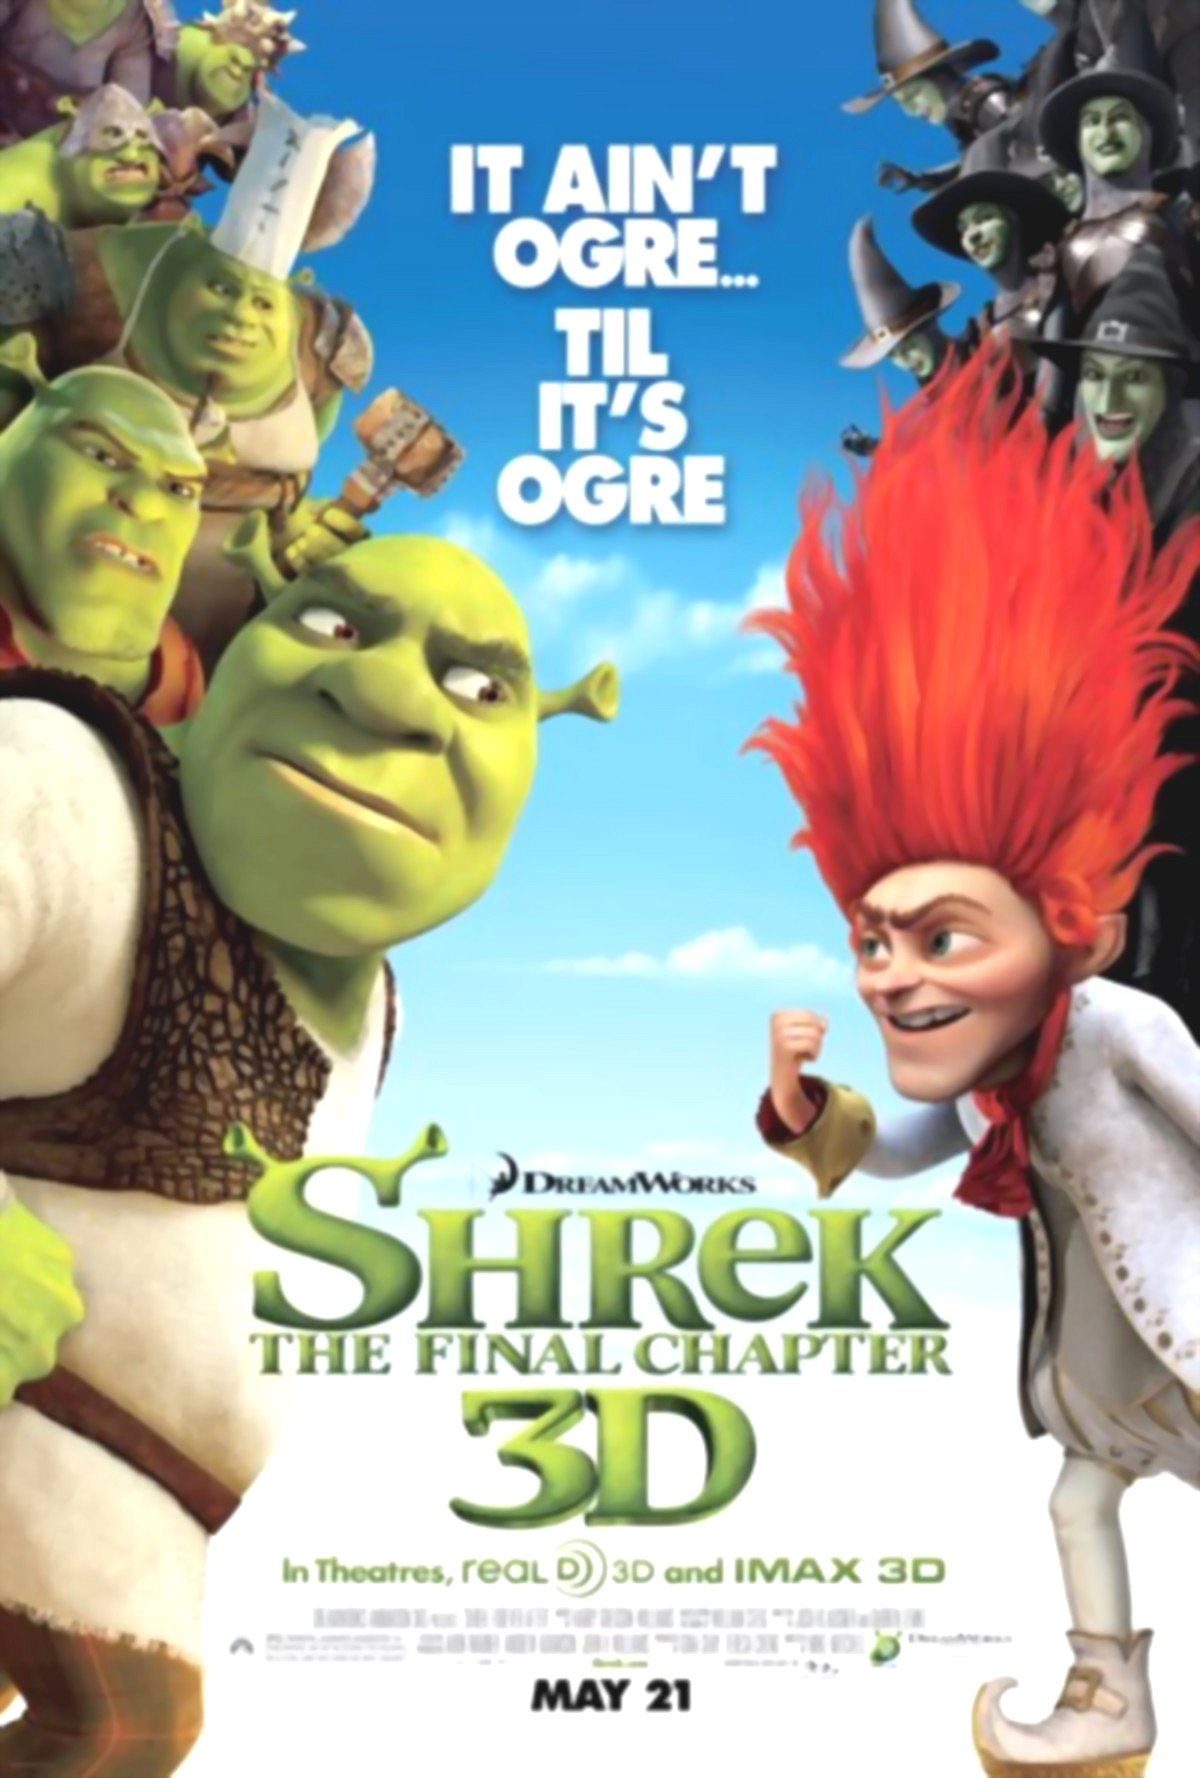 Shrek: The Final Chapter or Shrek Forever After Google image from http://i22.lulzimg.com/i/cf0273.jpg